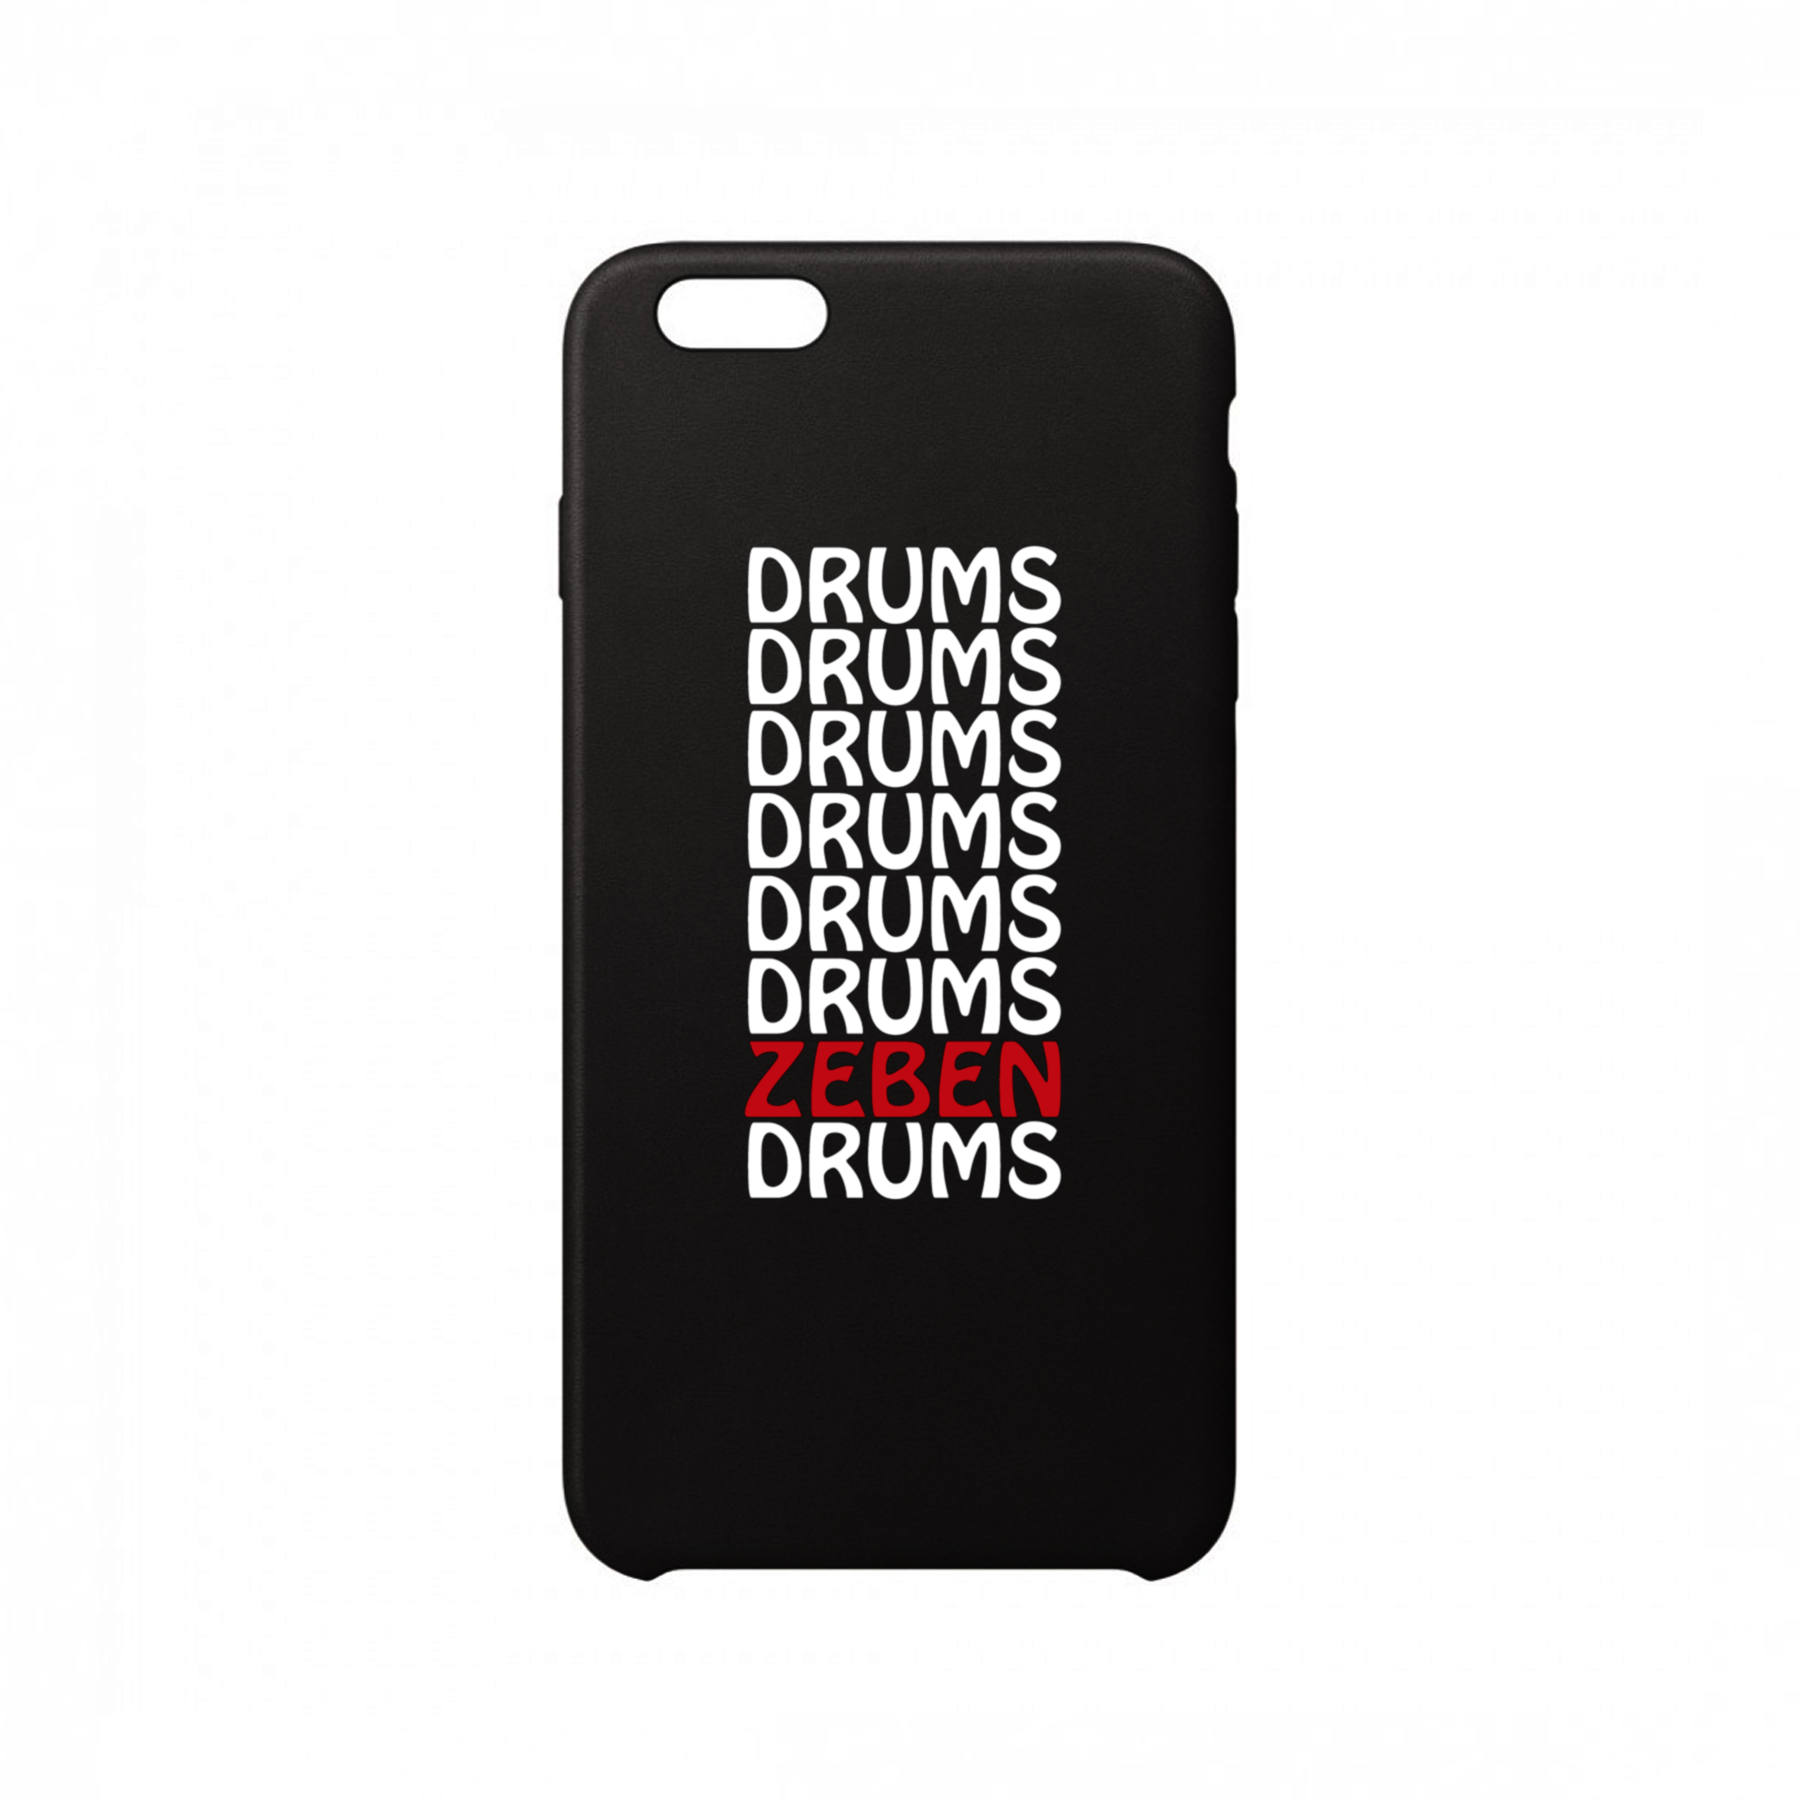 ZebenDrums - Funda Móvil Black Drums Drums - Merchanfy Imprime tus camisetas